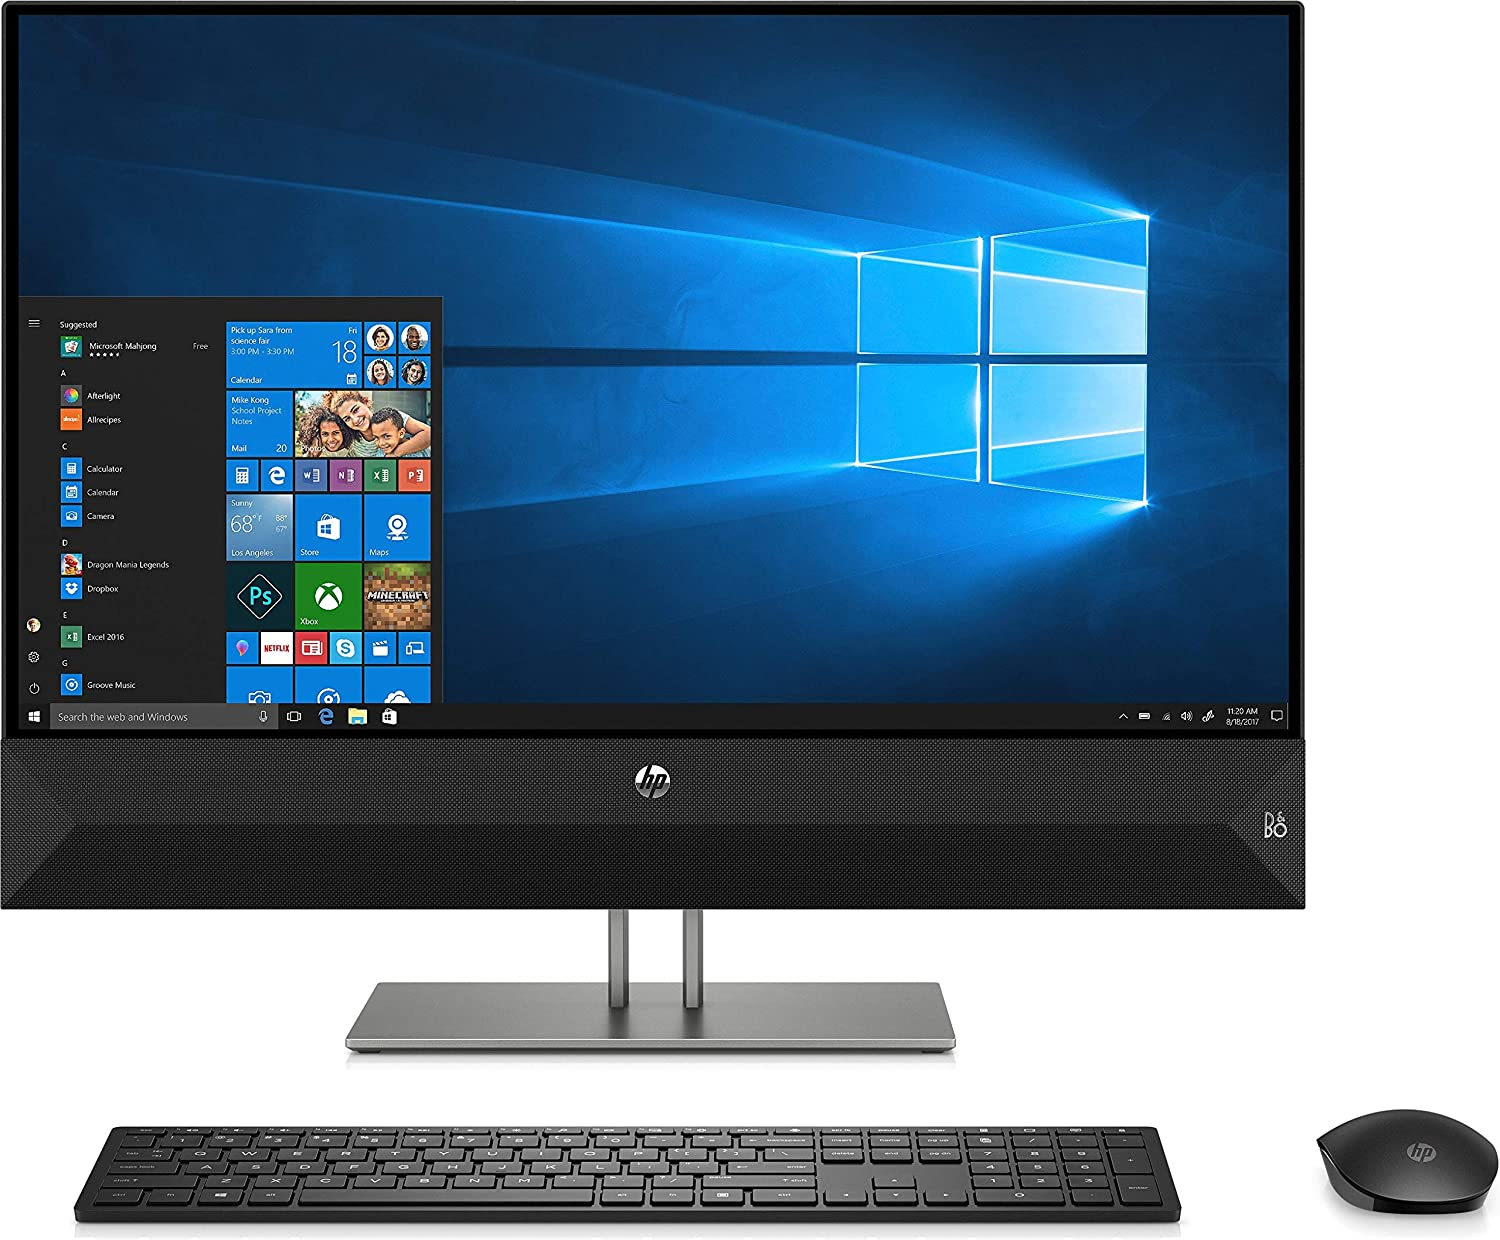 HP 27-xa0013w Pavilion 27-A0013W AiO 27 in, AMD Ryzen 5 2600H, AMD Radeon Vega 8 Graphics, 1TB HDD, 8GB RAM, Touch Desktop